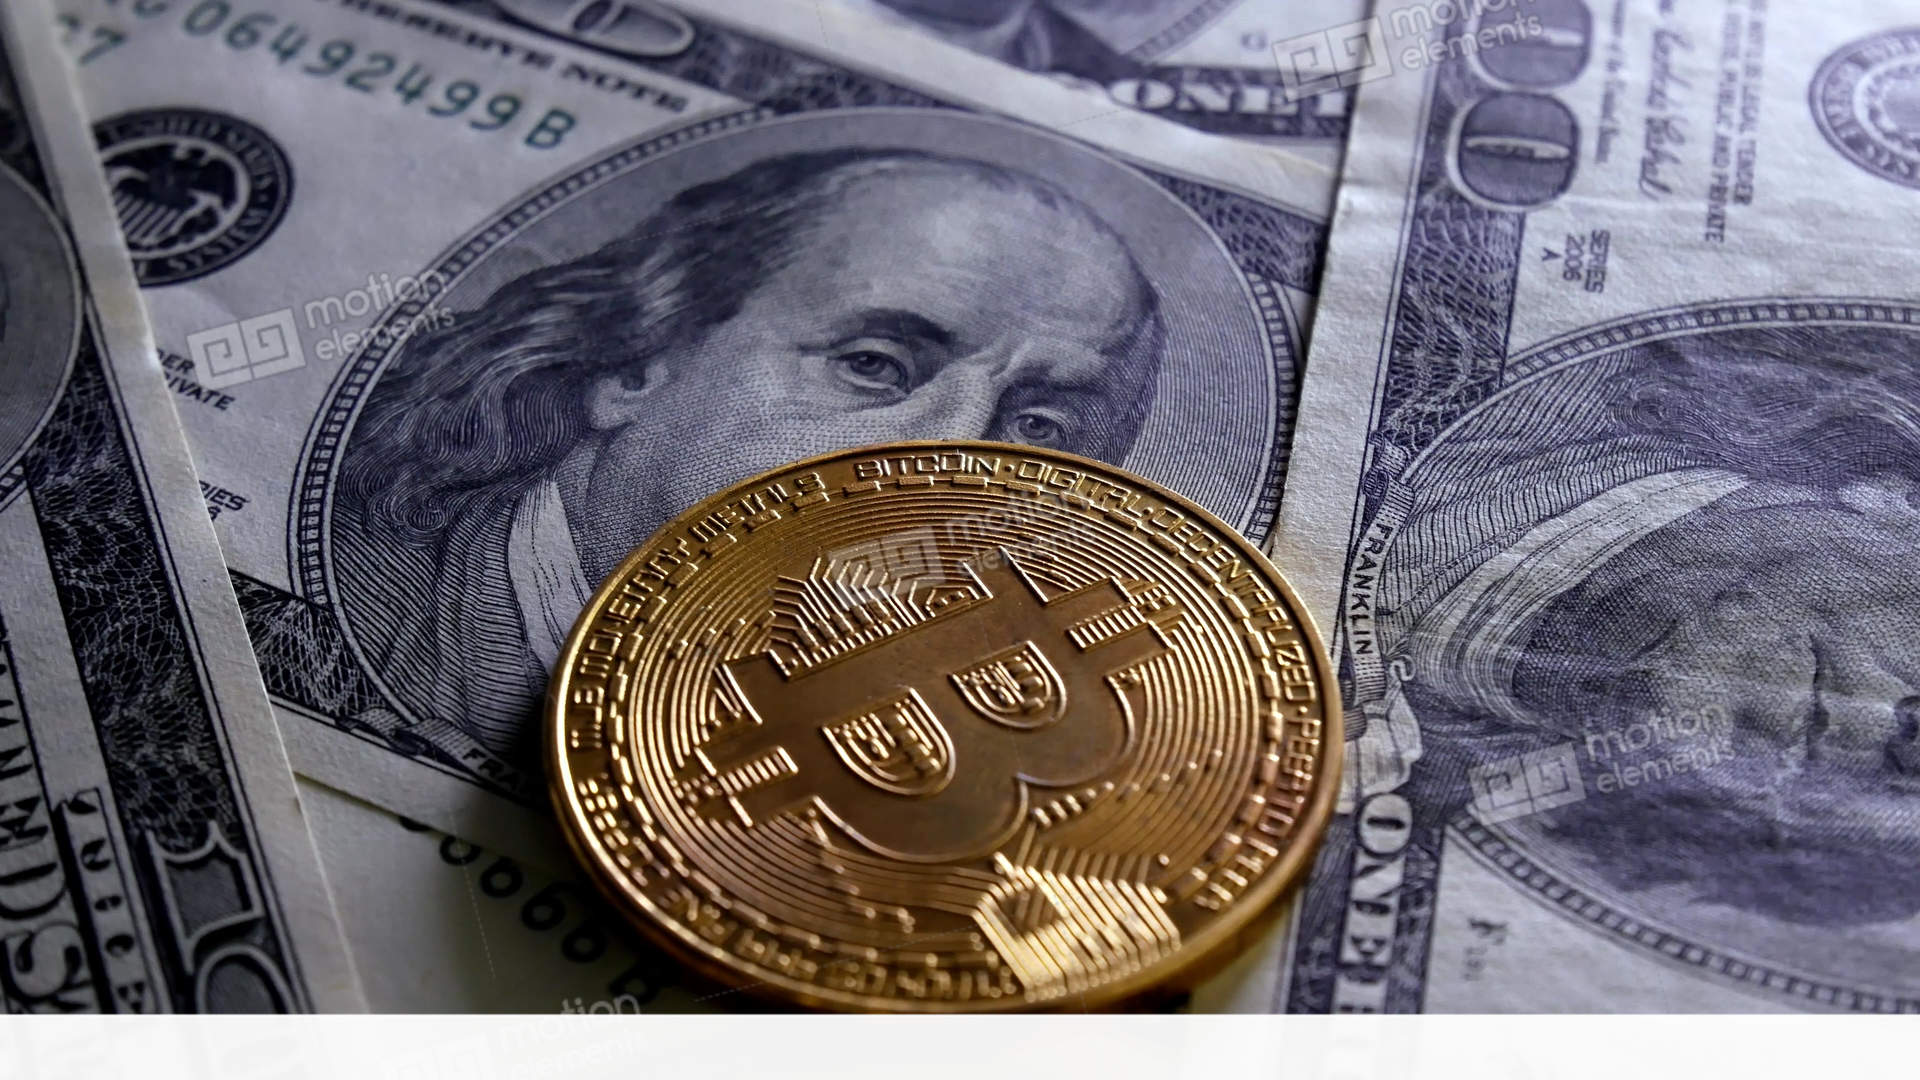 Gold Bitcoin Btc Coins Rotating On Bills Of 100 Dollars Stock Video Footage